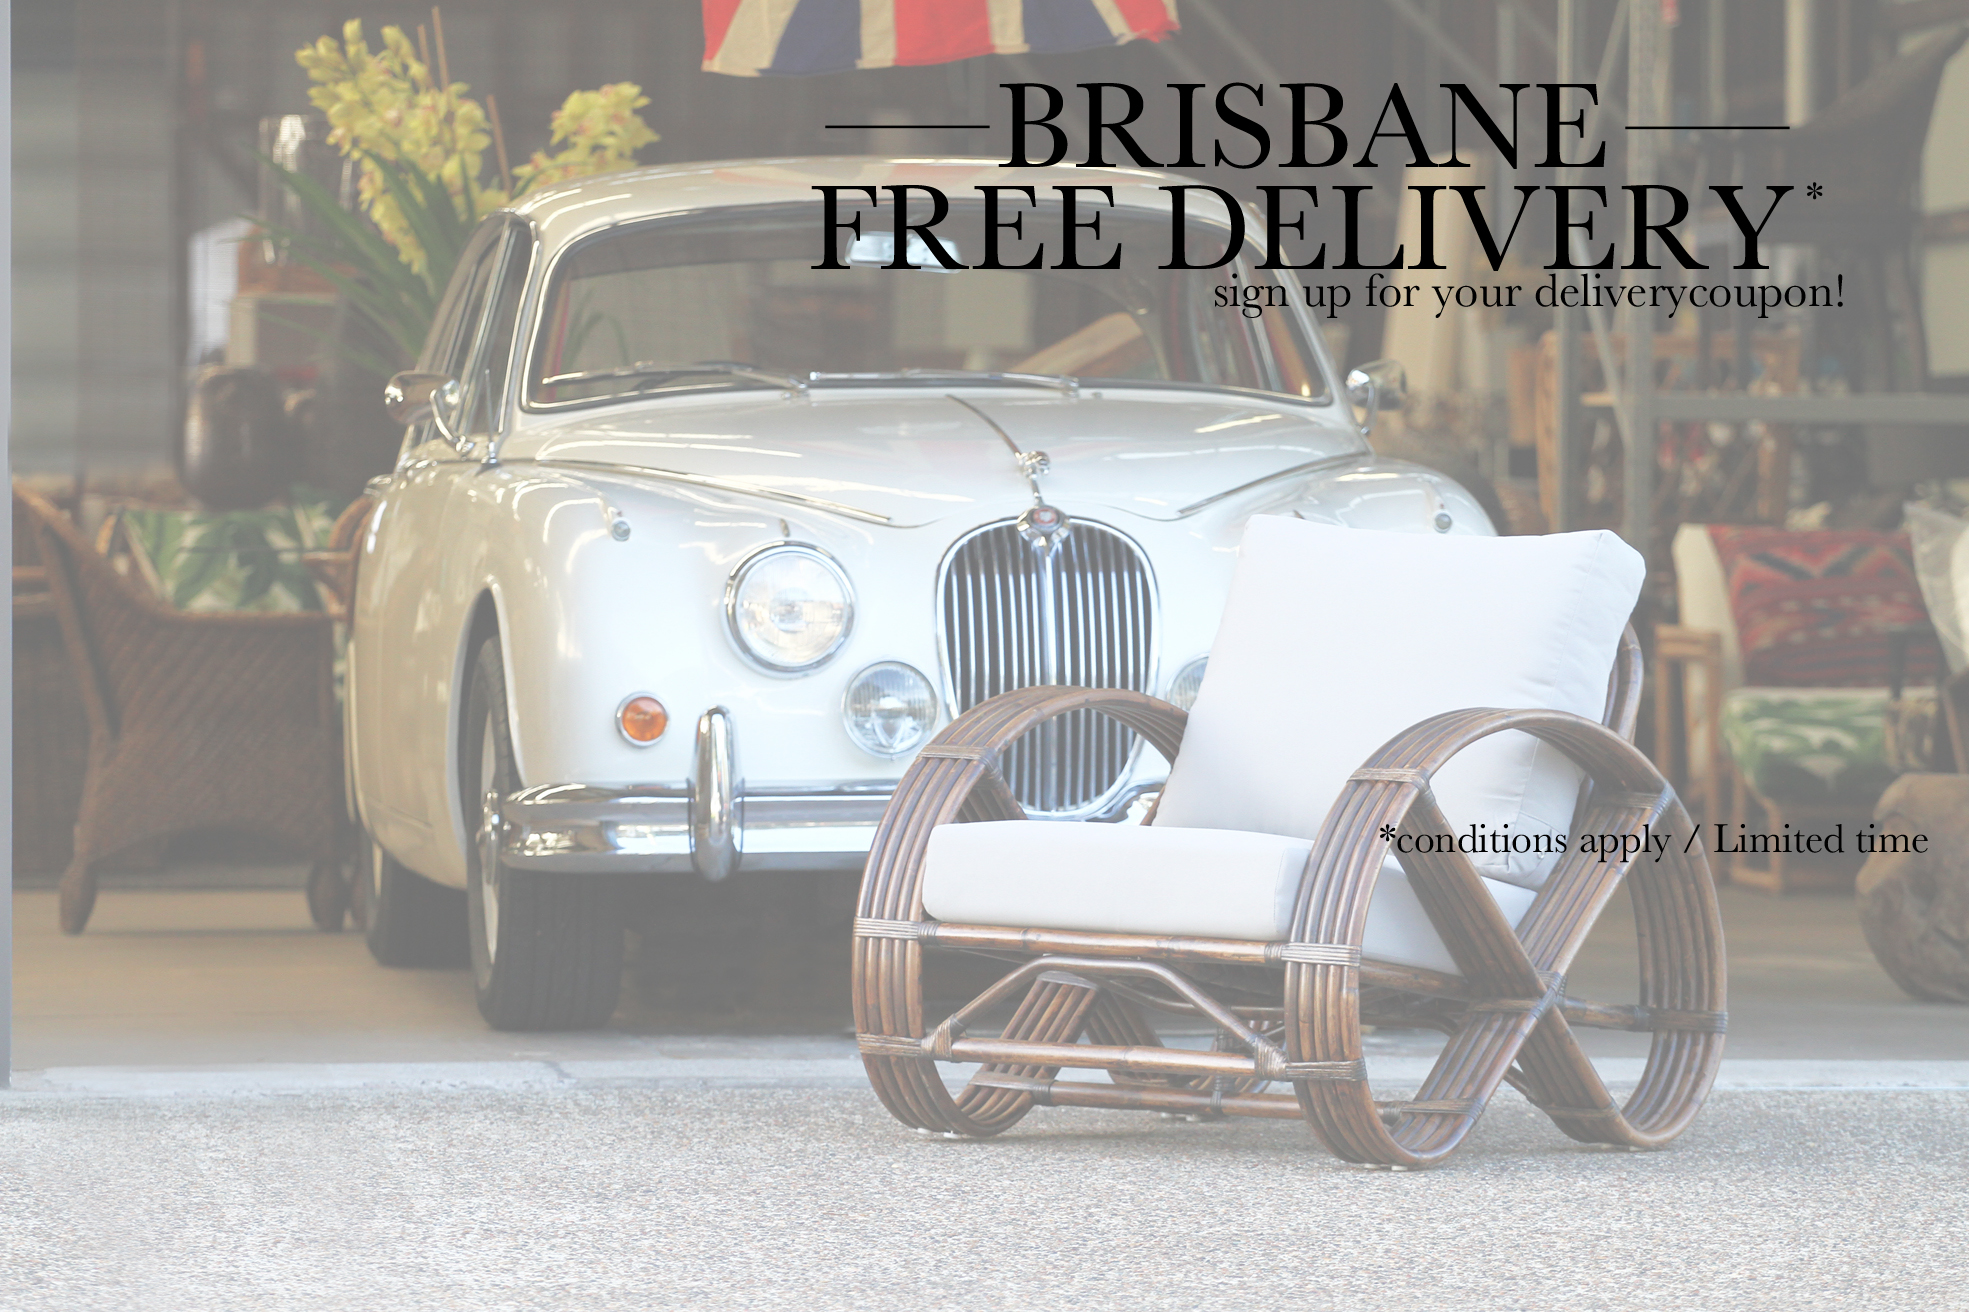 Cane Outdoor Furniture Brisbane Free Delivery Brisbane Naturally Cane Rattan And Wicker